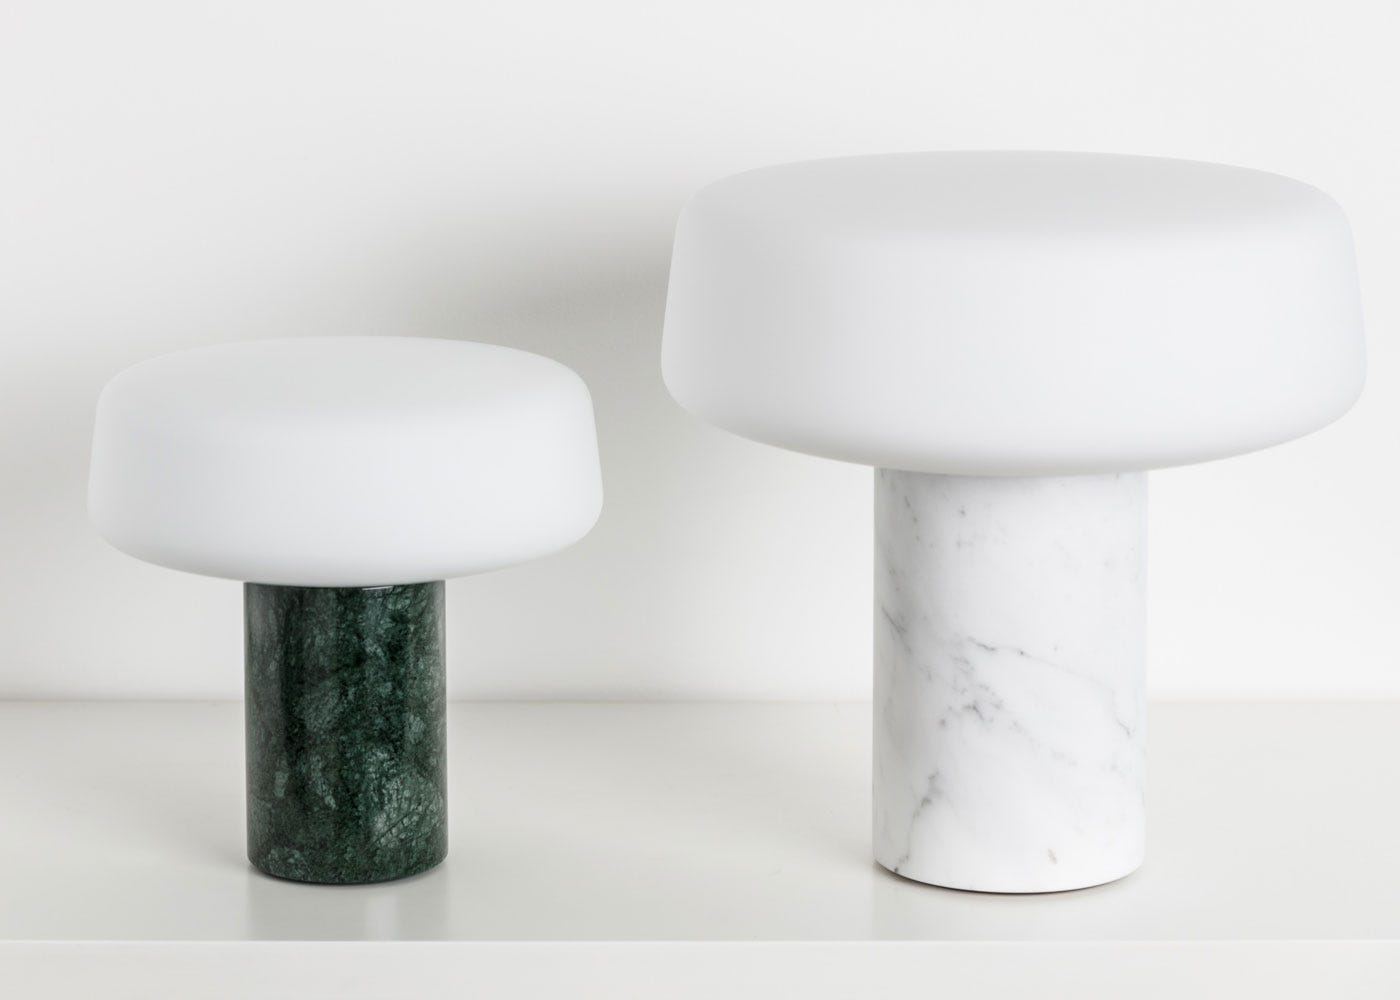 As shown (from left to right): Solid Table Lamp small in Nero Marquina Marble, Solid Table Lamp large in carrara marble